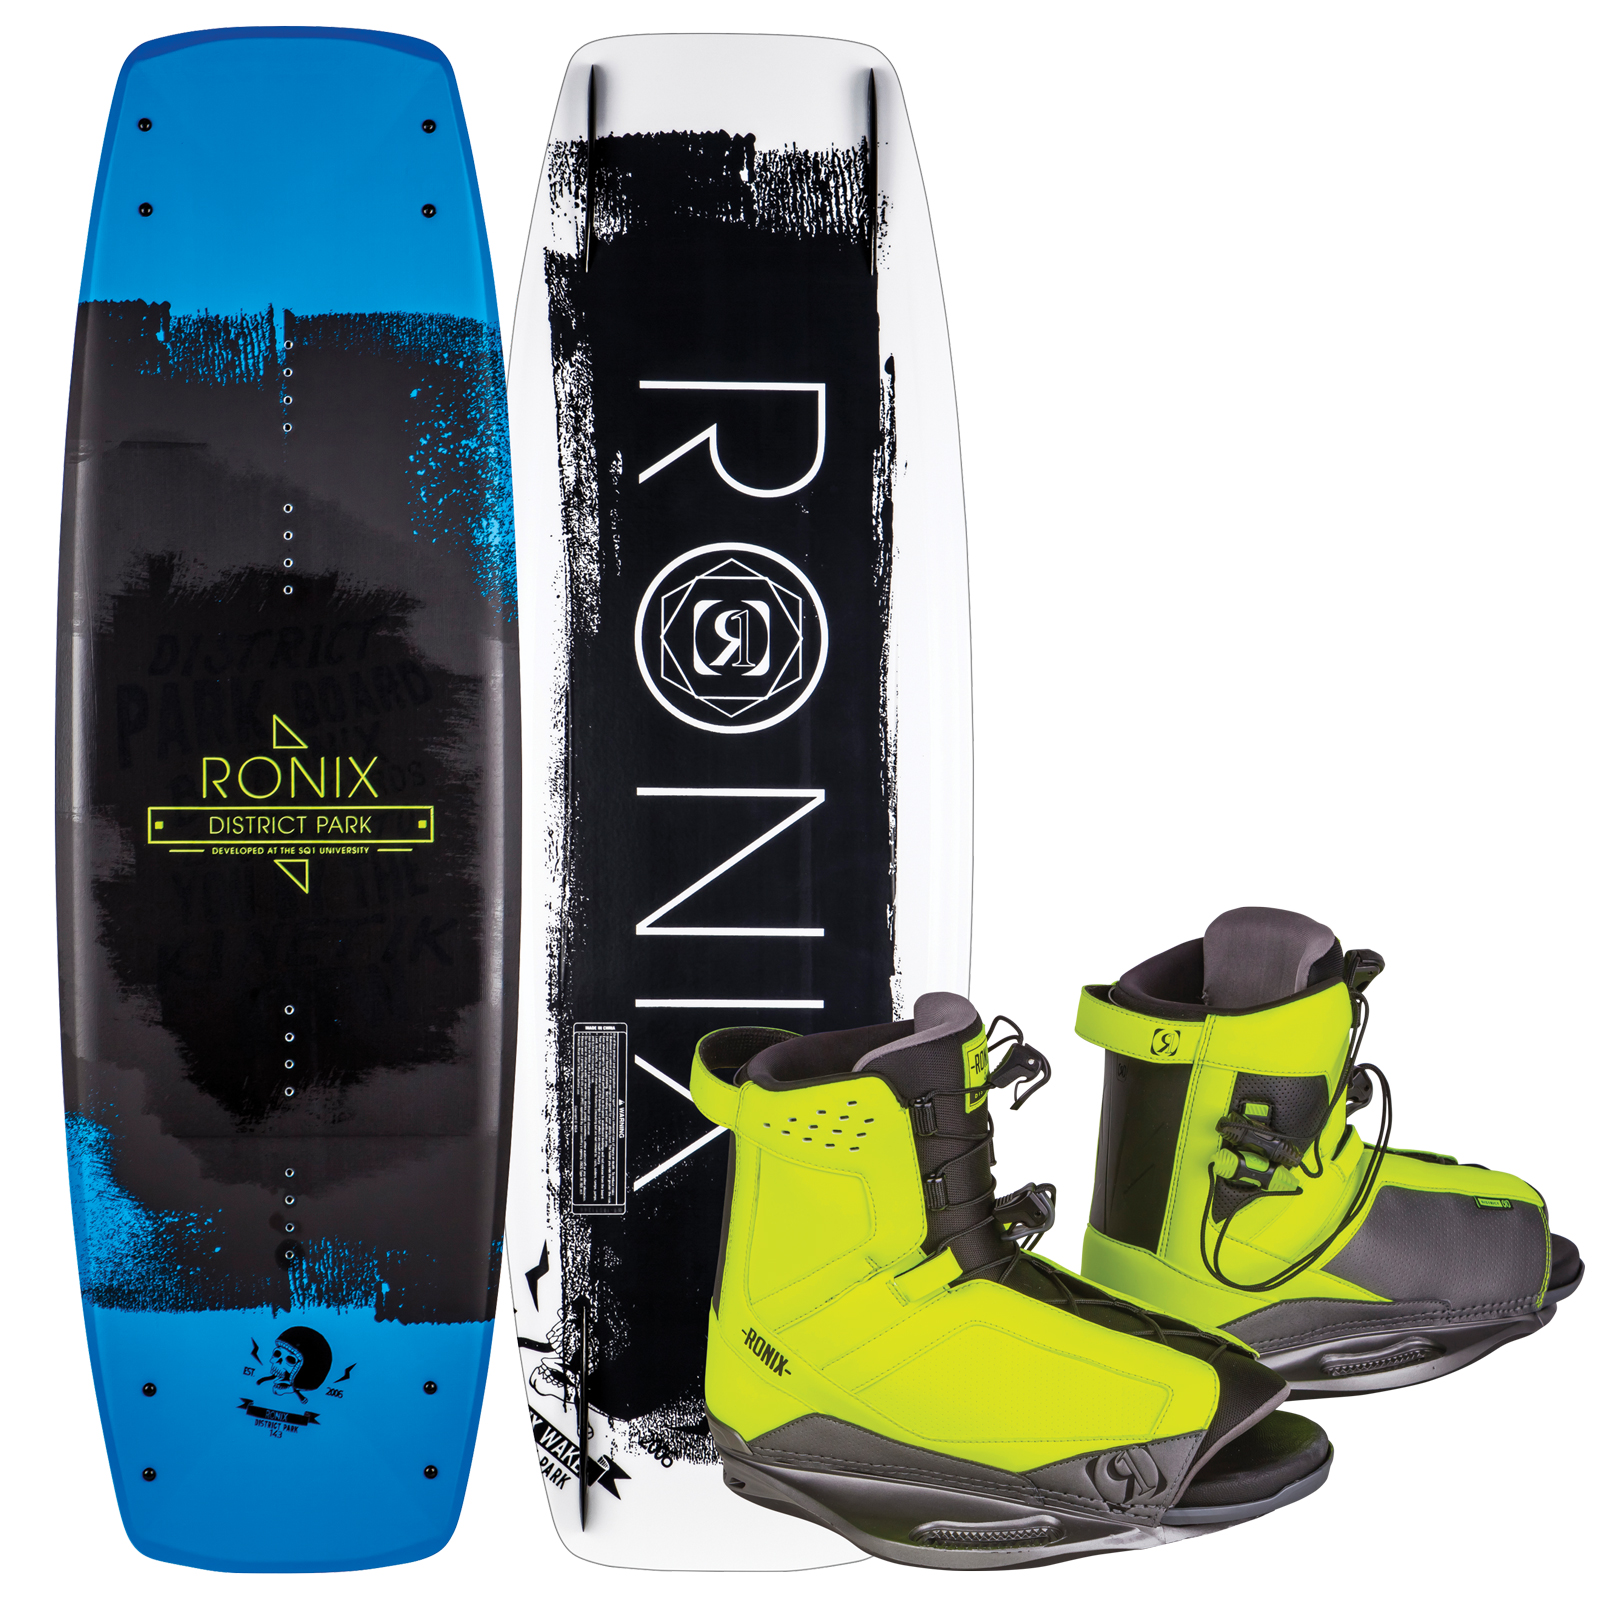 DISTRICT PARK 143 W/ DISTRICT PACKAGE RONIX 2017